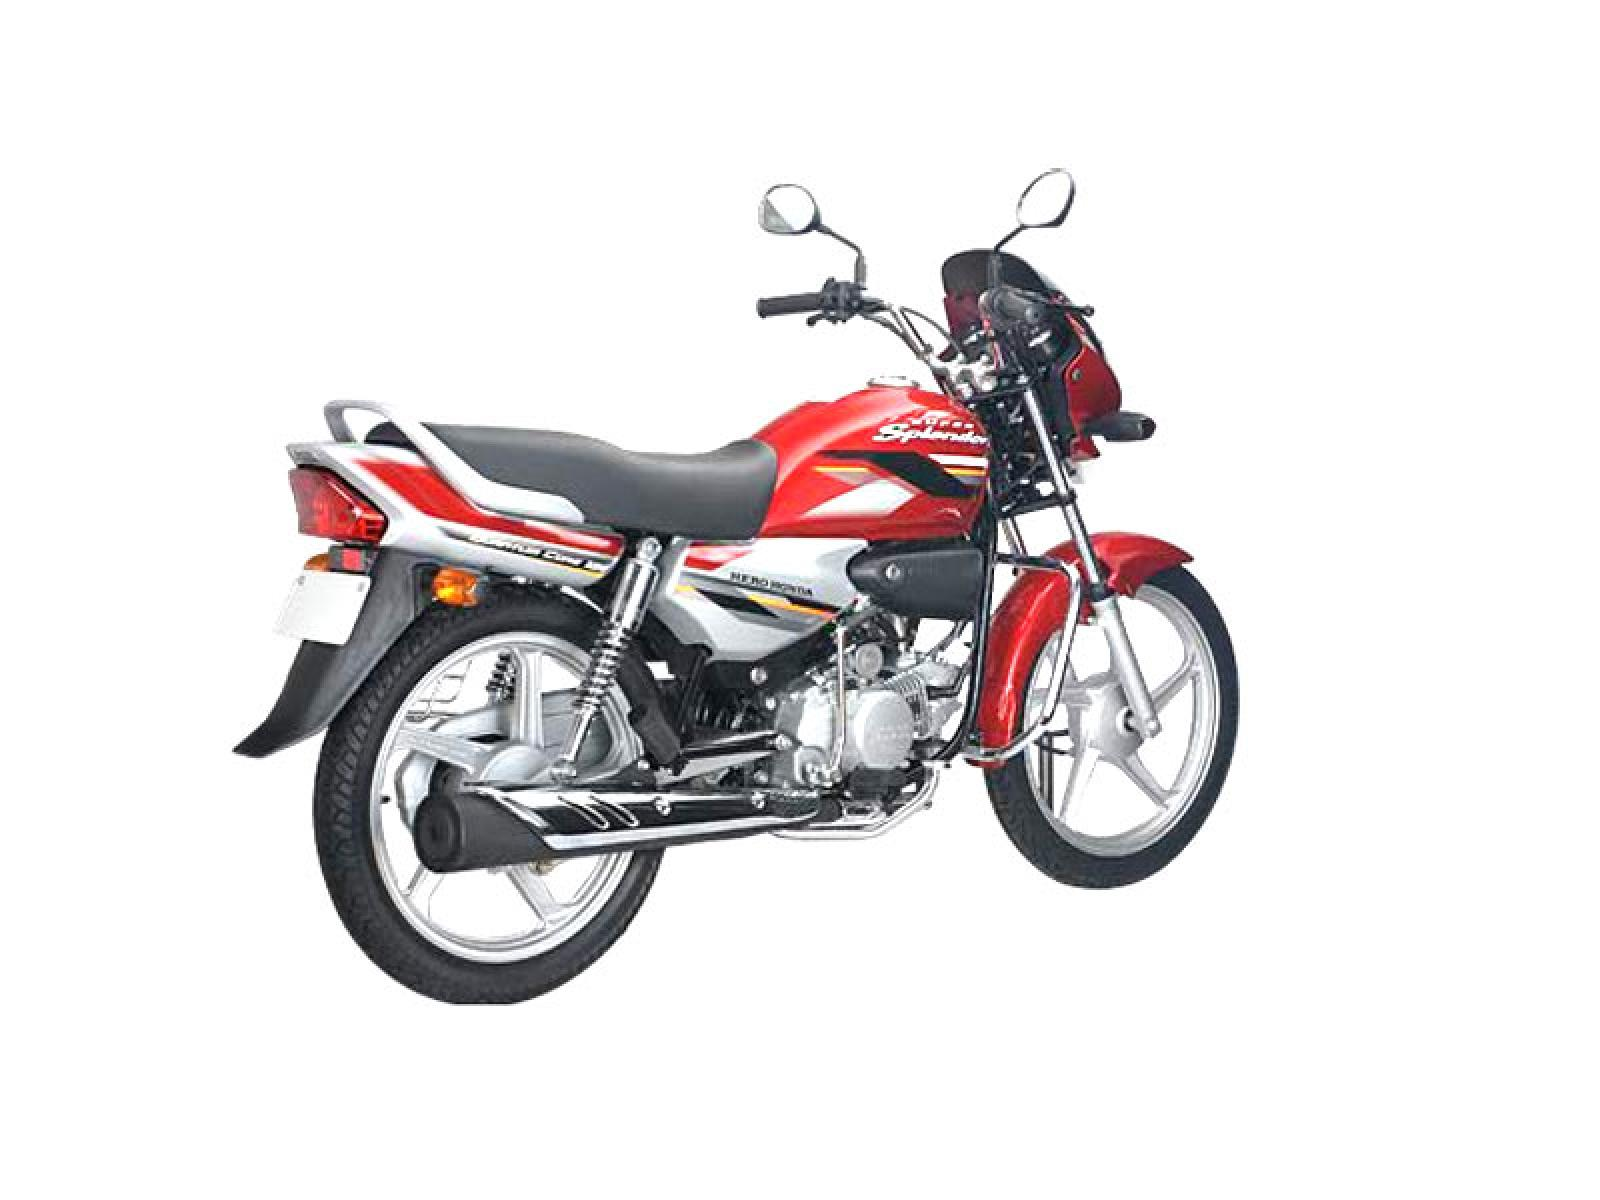 Hero Honda 125 Super Splendor 2008 images #74793